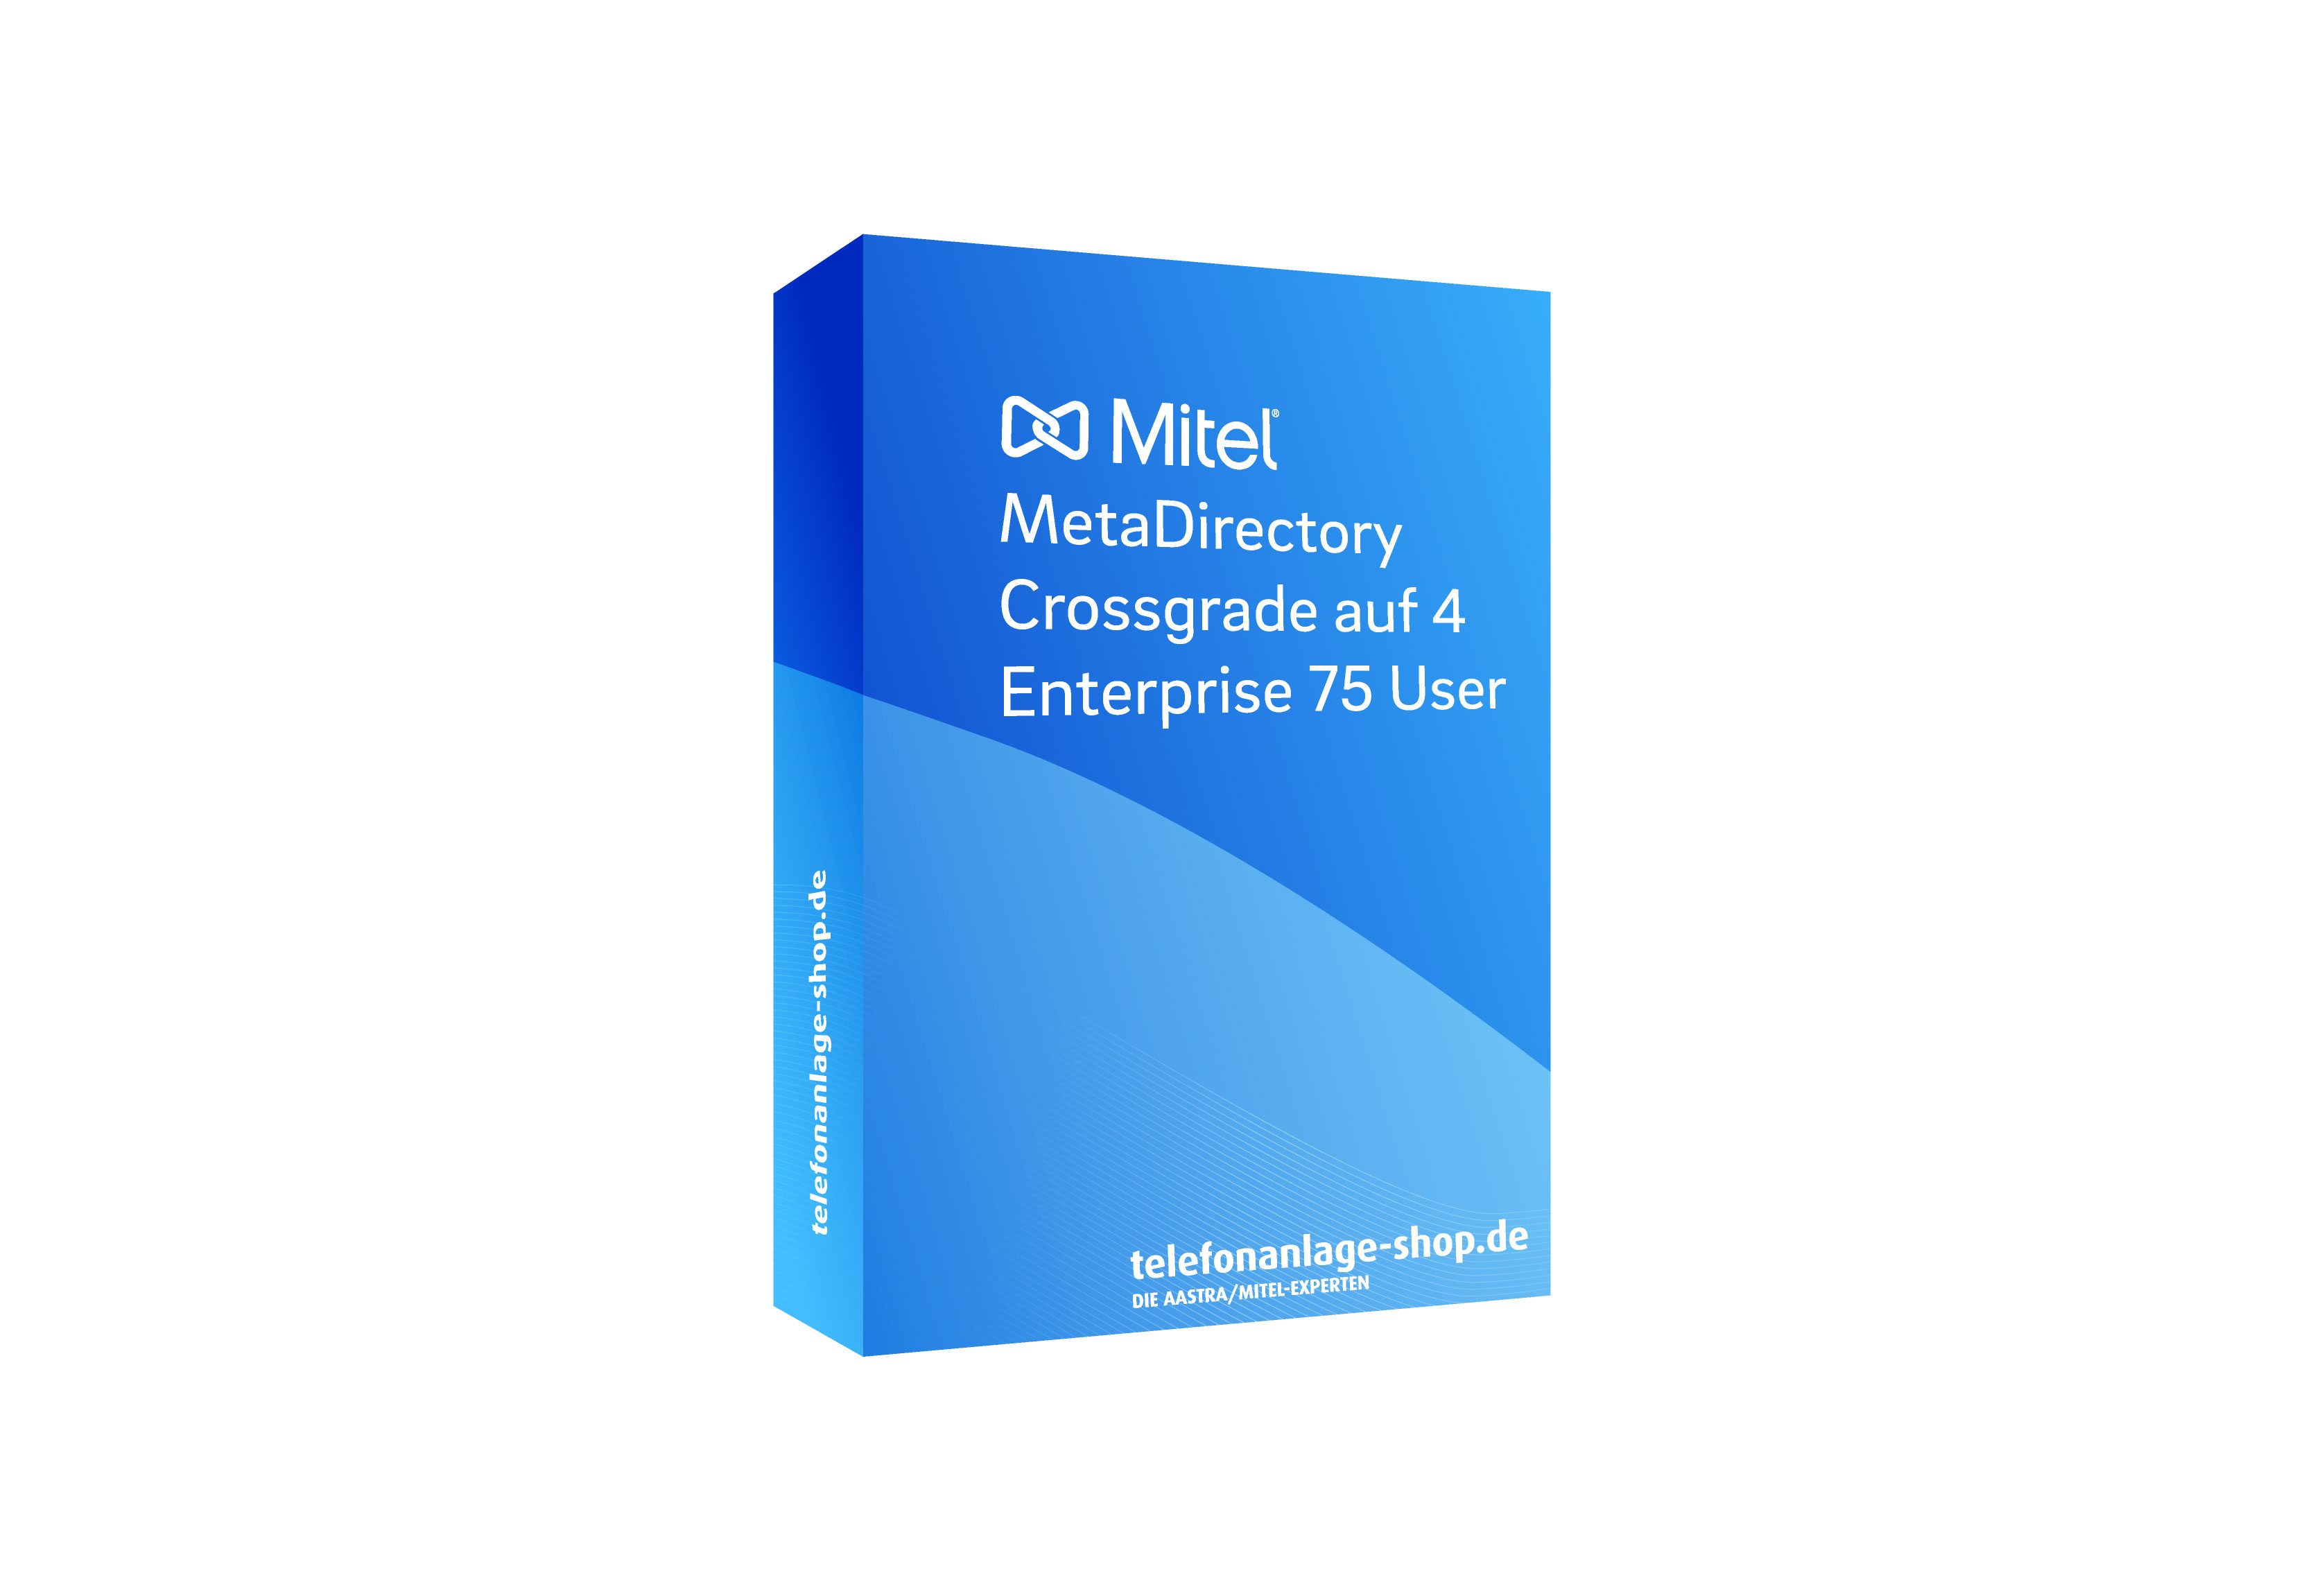 Produktbild - Mitel MetaDirectory Crossgrade auf 4 Enterprise 75 User